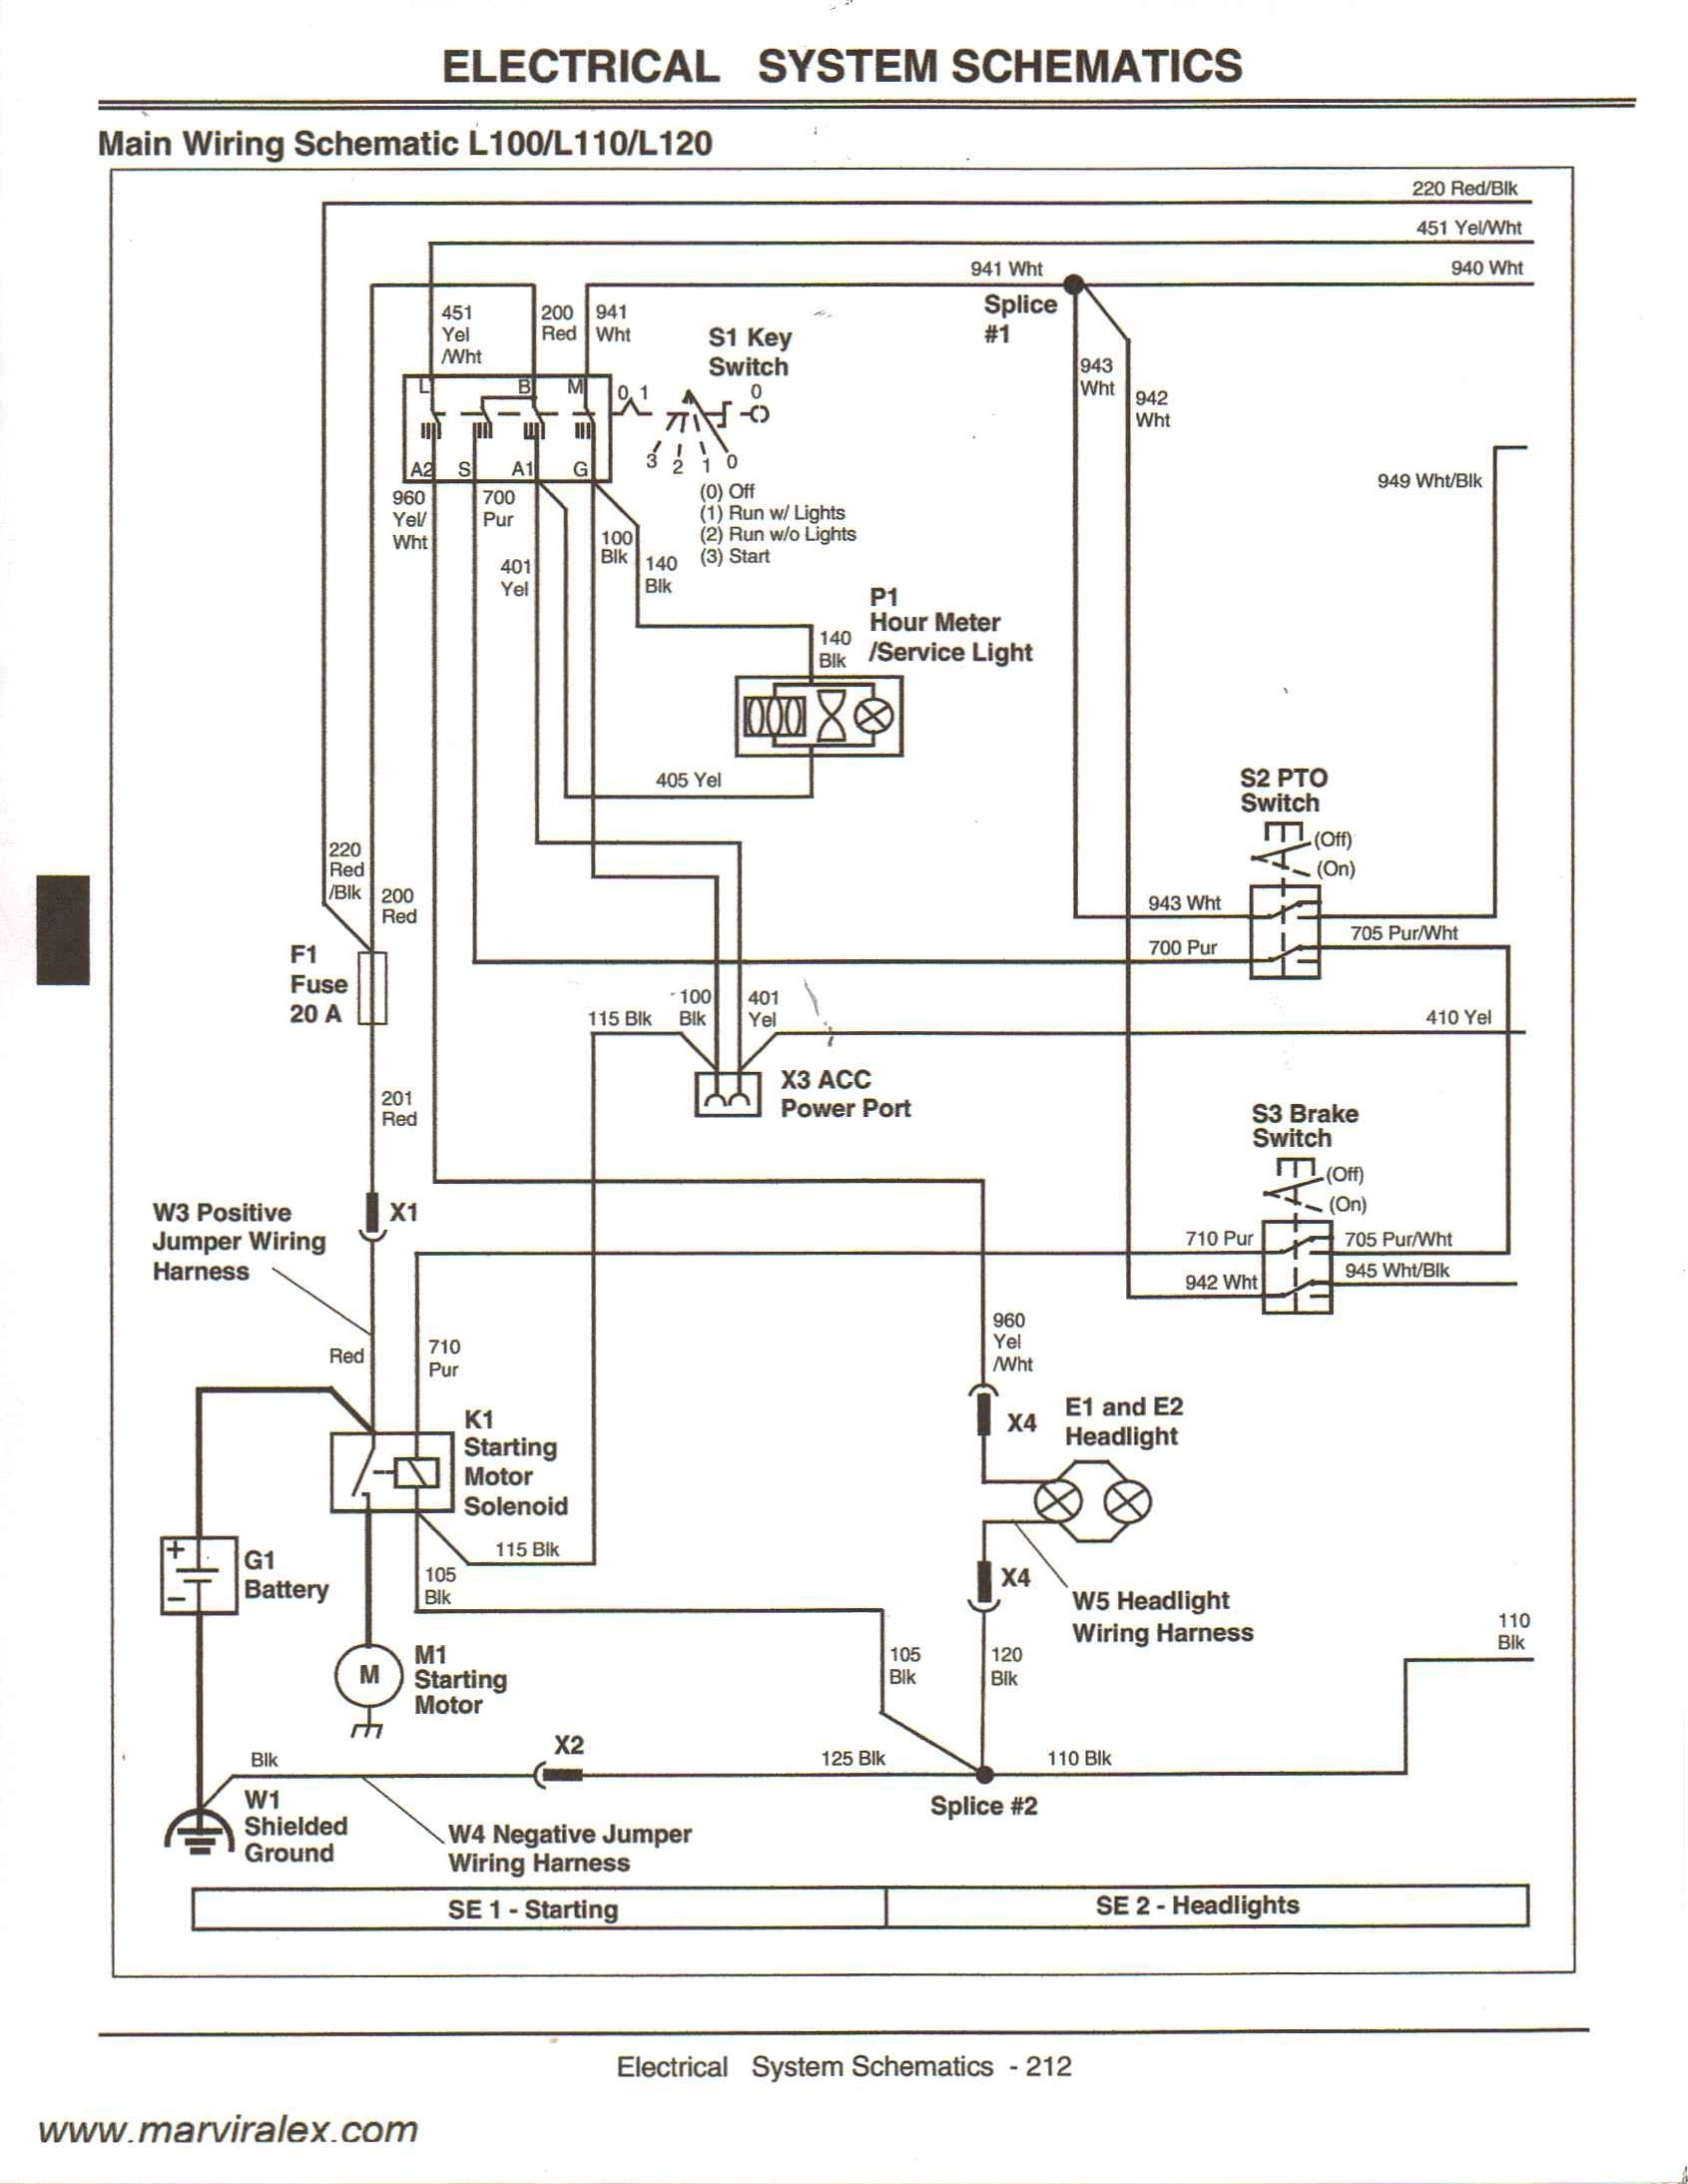 chevrolet wiring diagrams free download john deere gator ignition switch wiring diagram | free ... wiring diagrams free download silver series